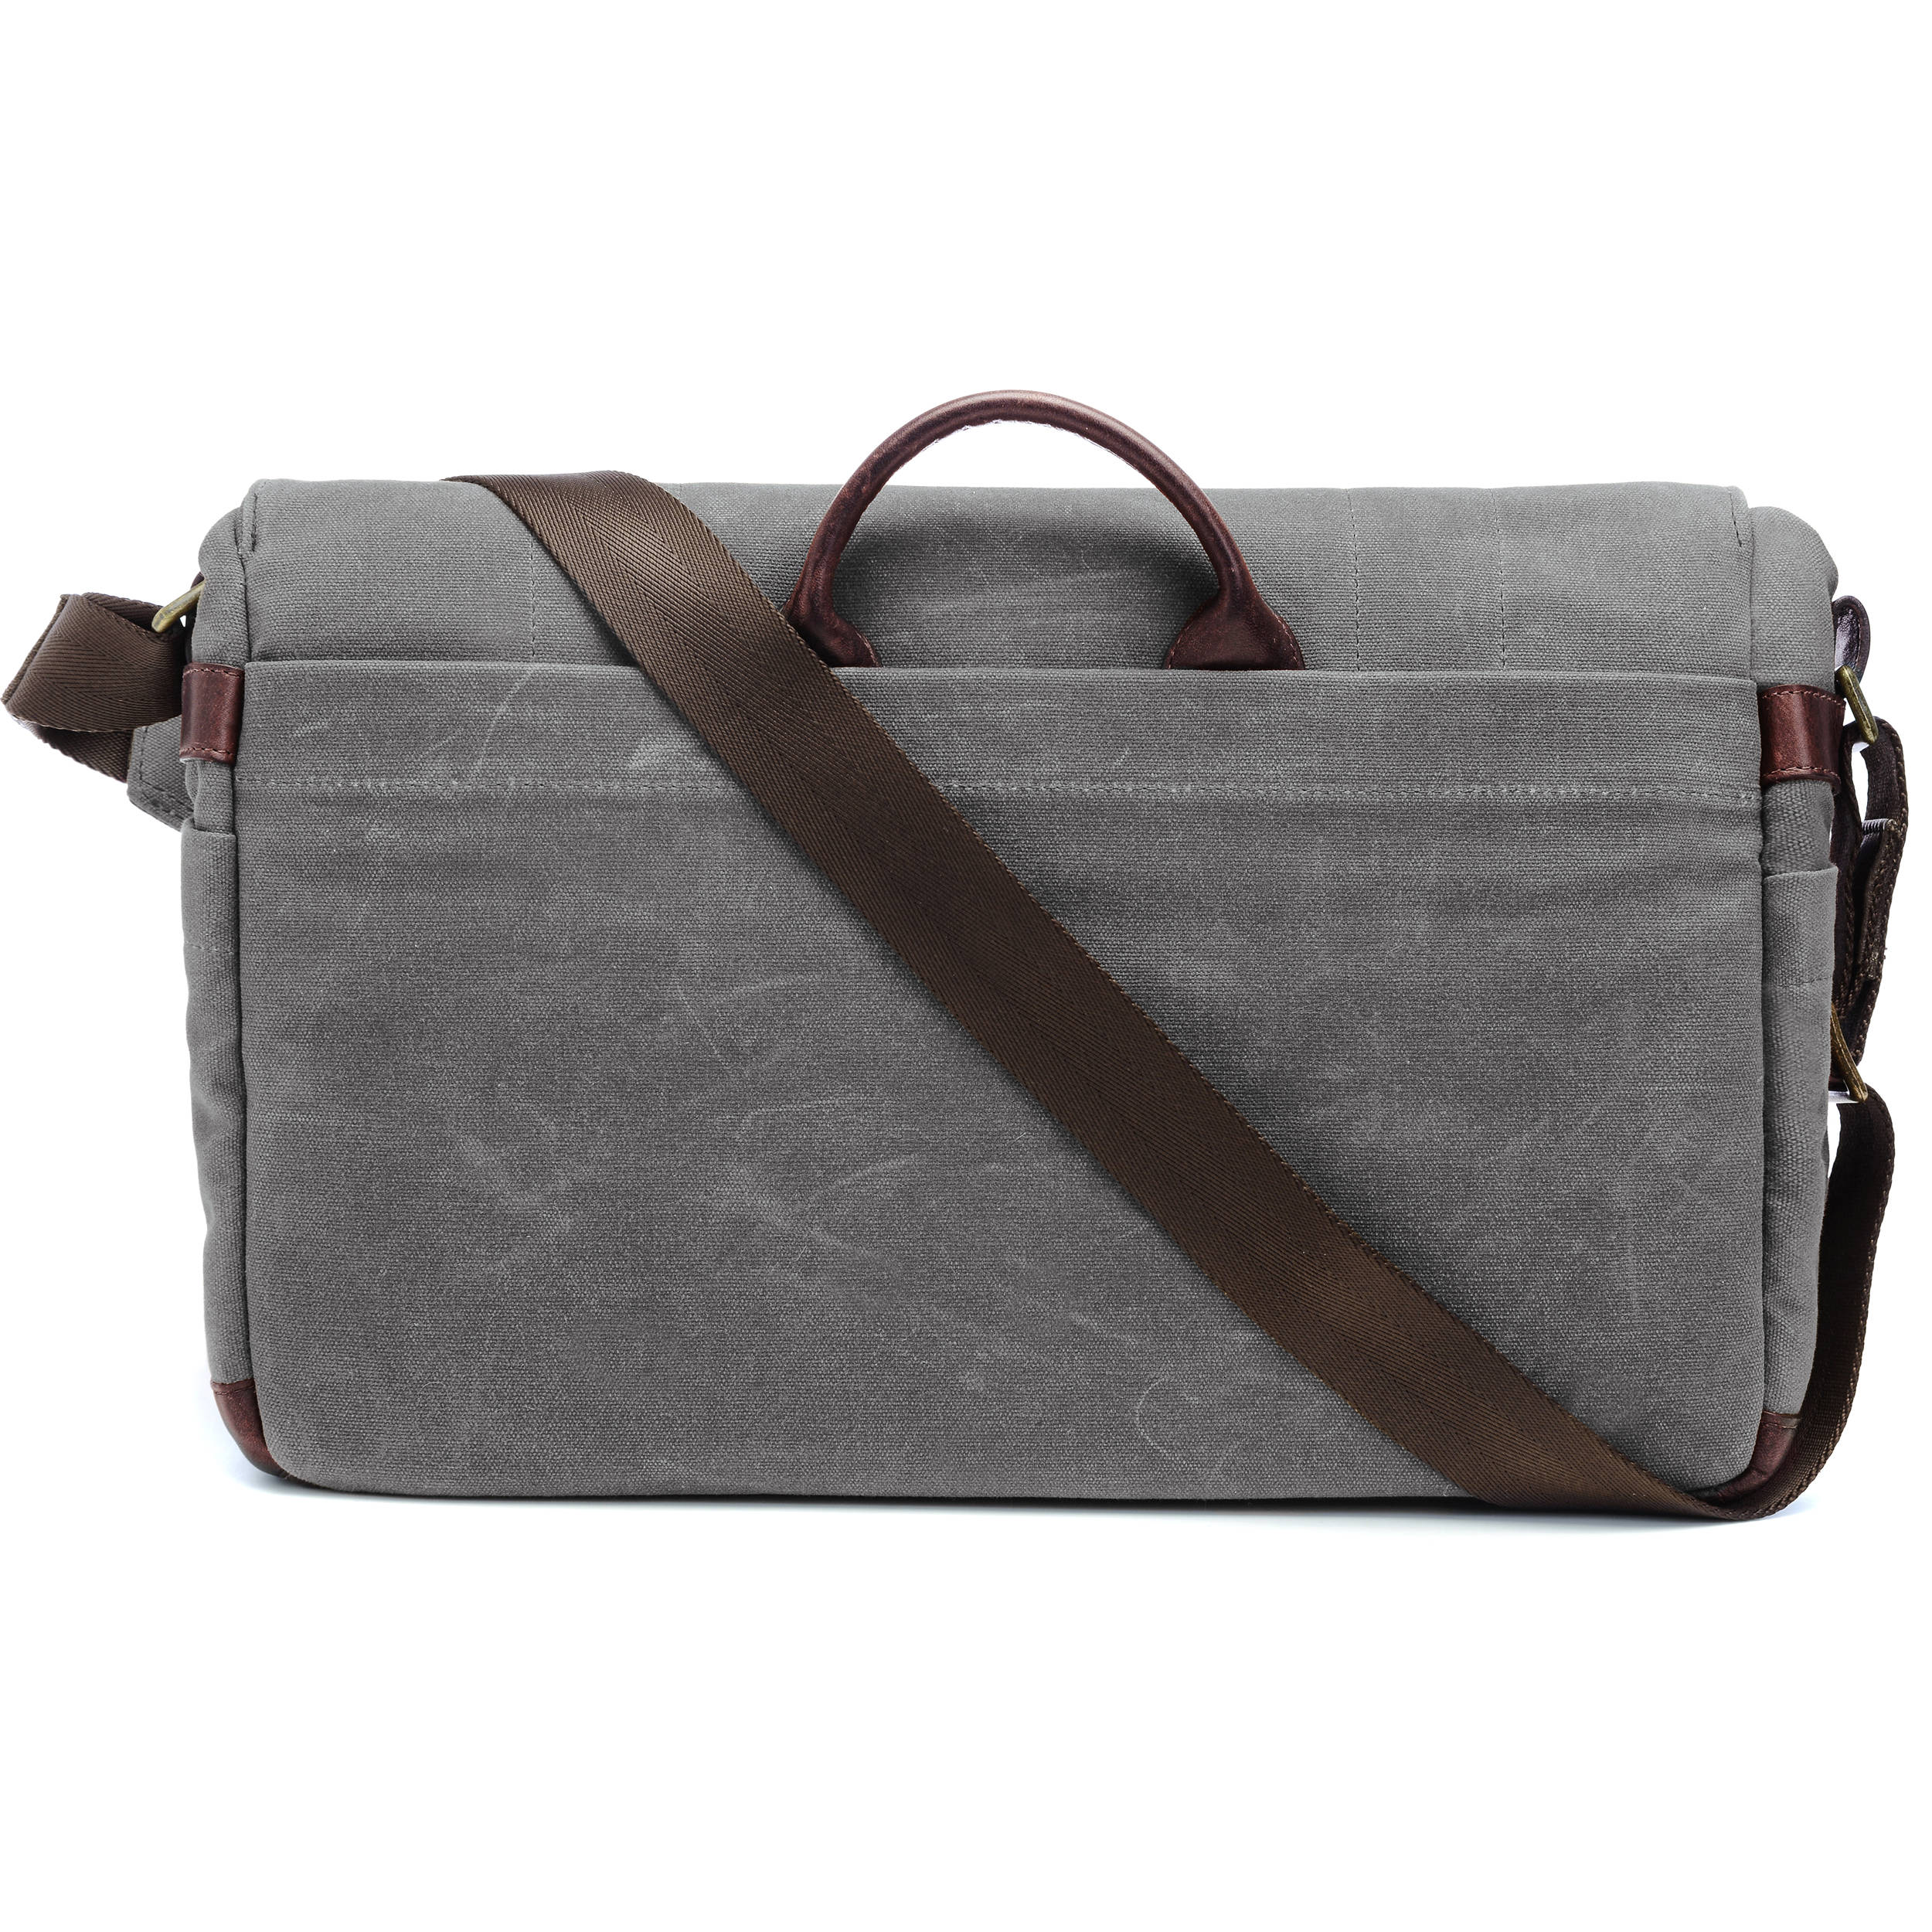 5b62721dd08d ONA The Union Street Messenger Bag (Smoke, Waxed Canvas & Leather)